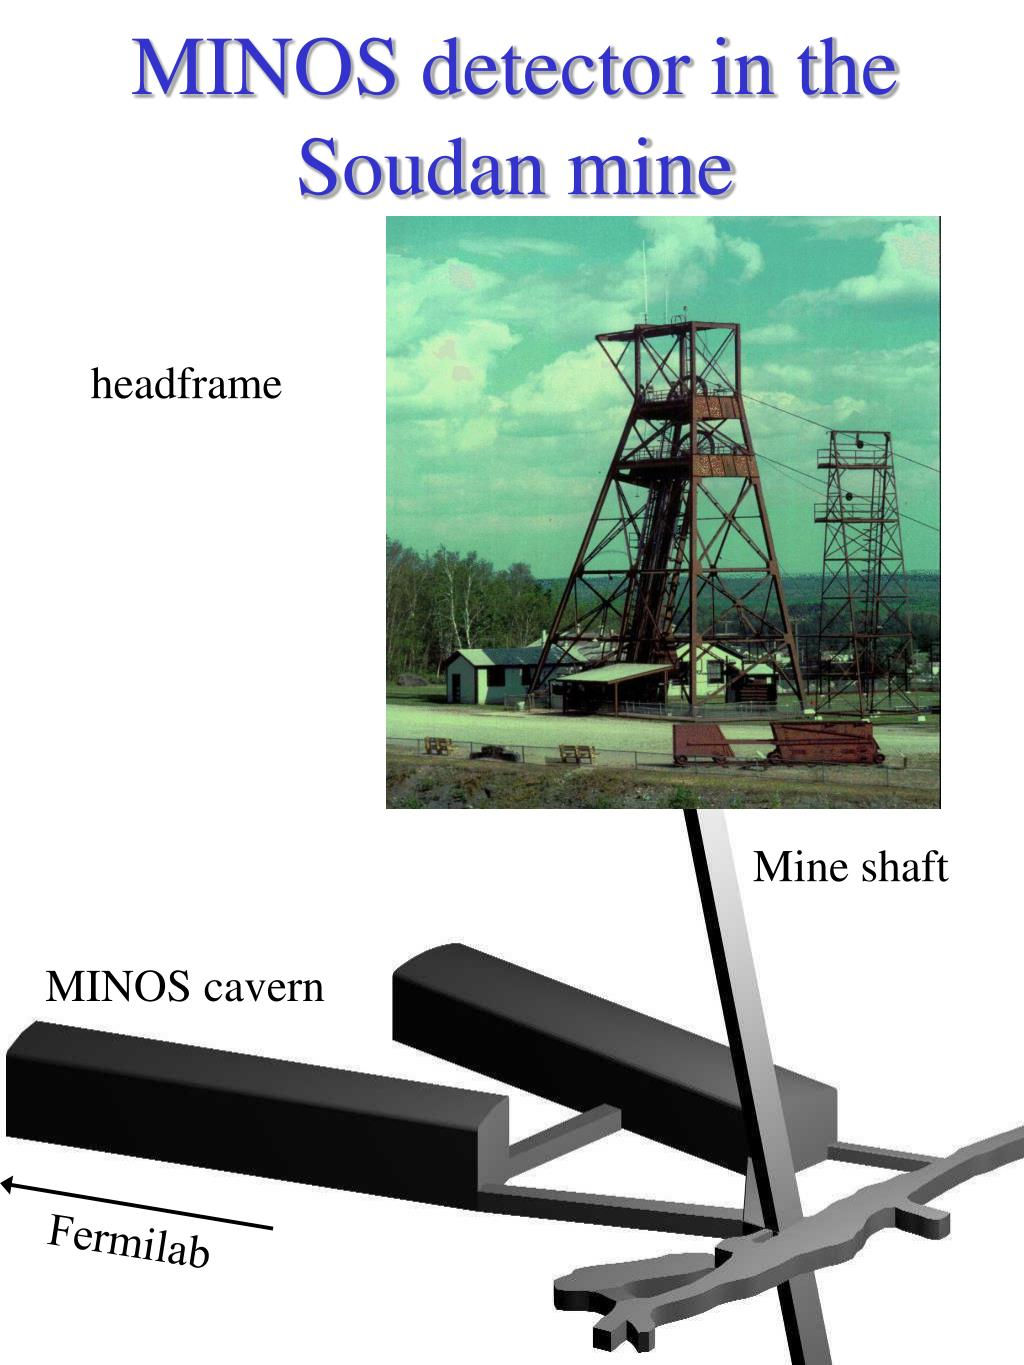 MINOS detector in the Soudan mine